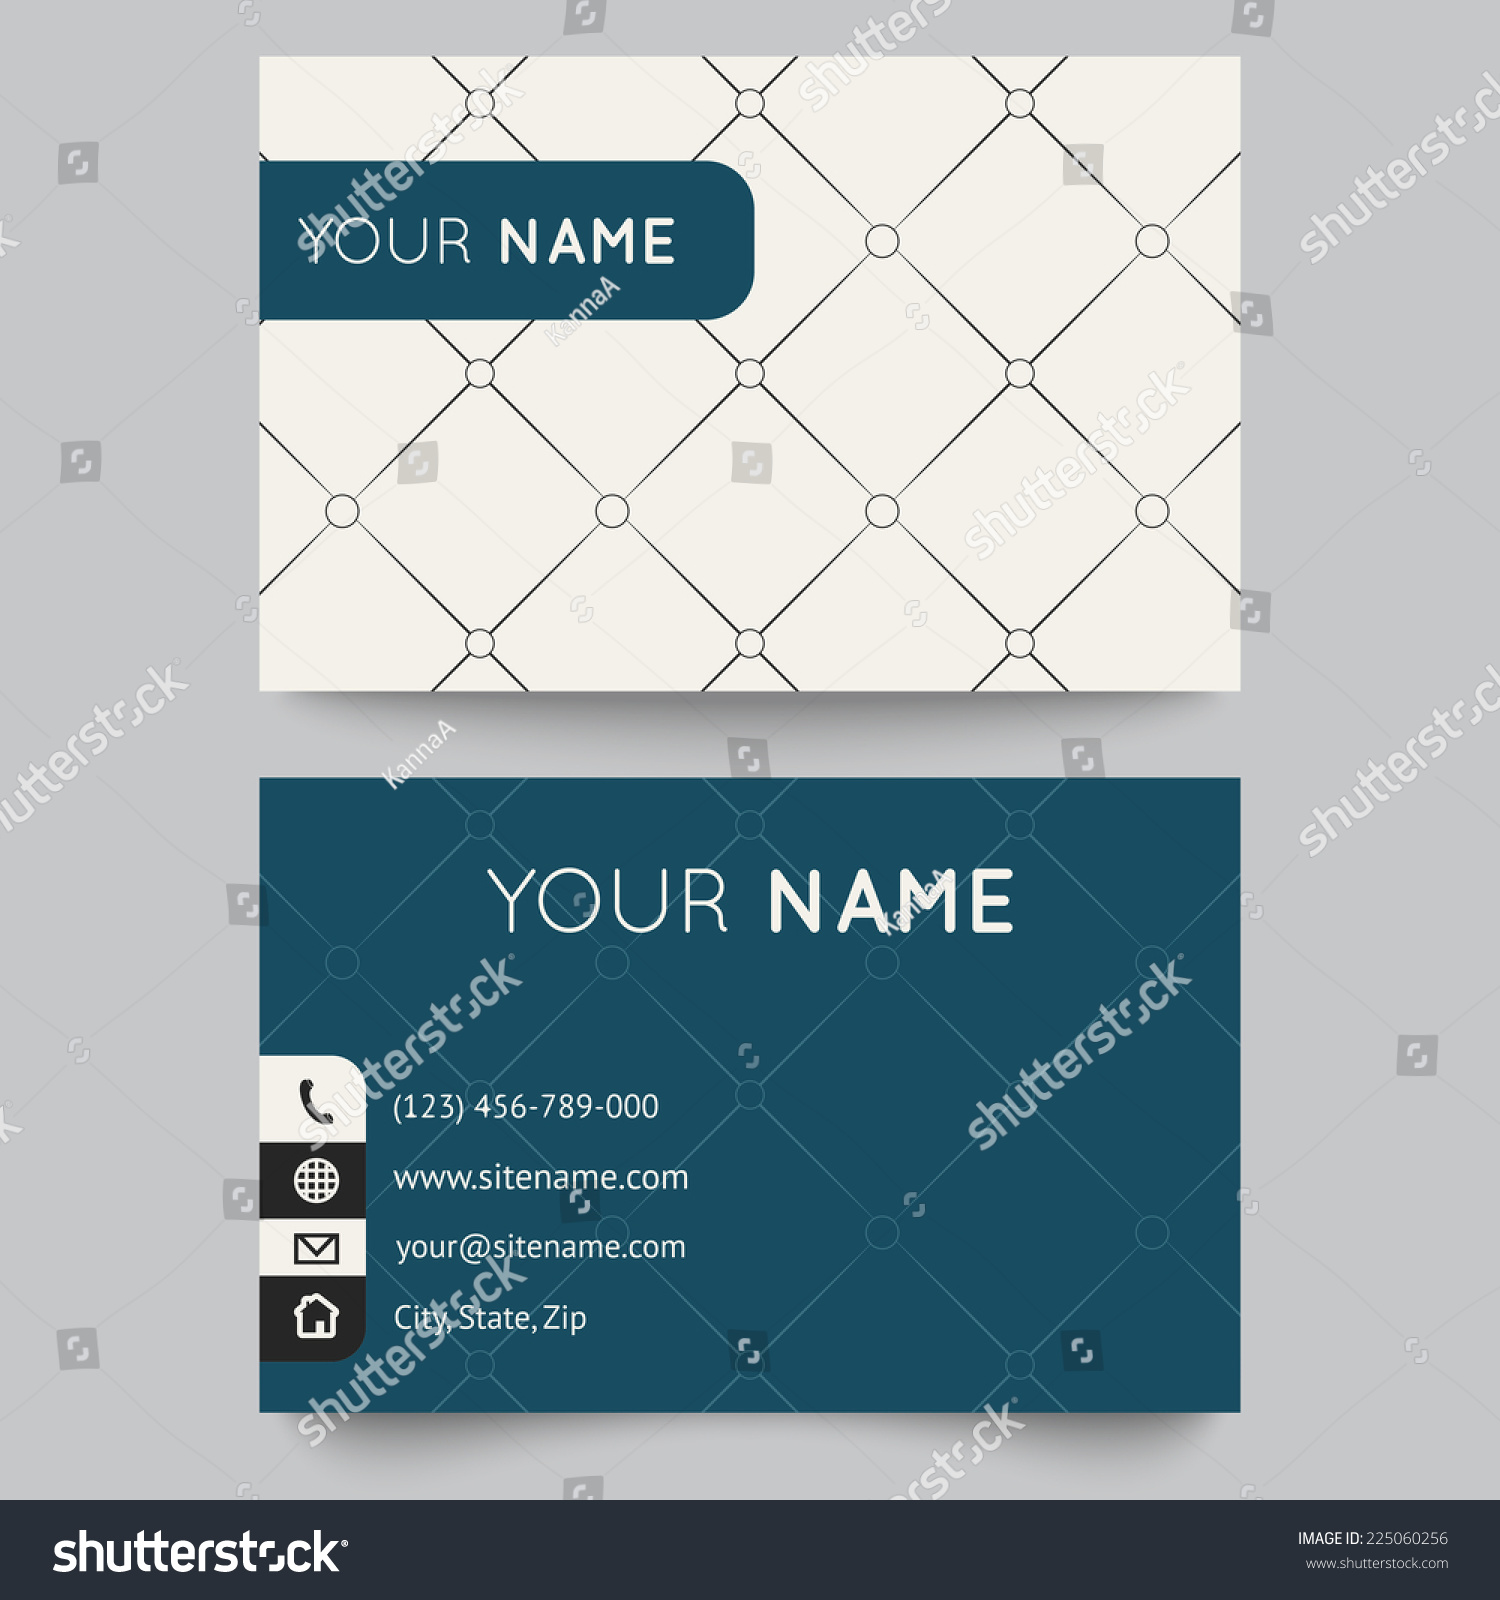 editable credit card template